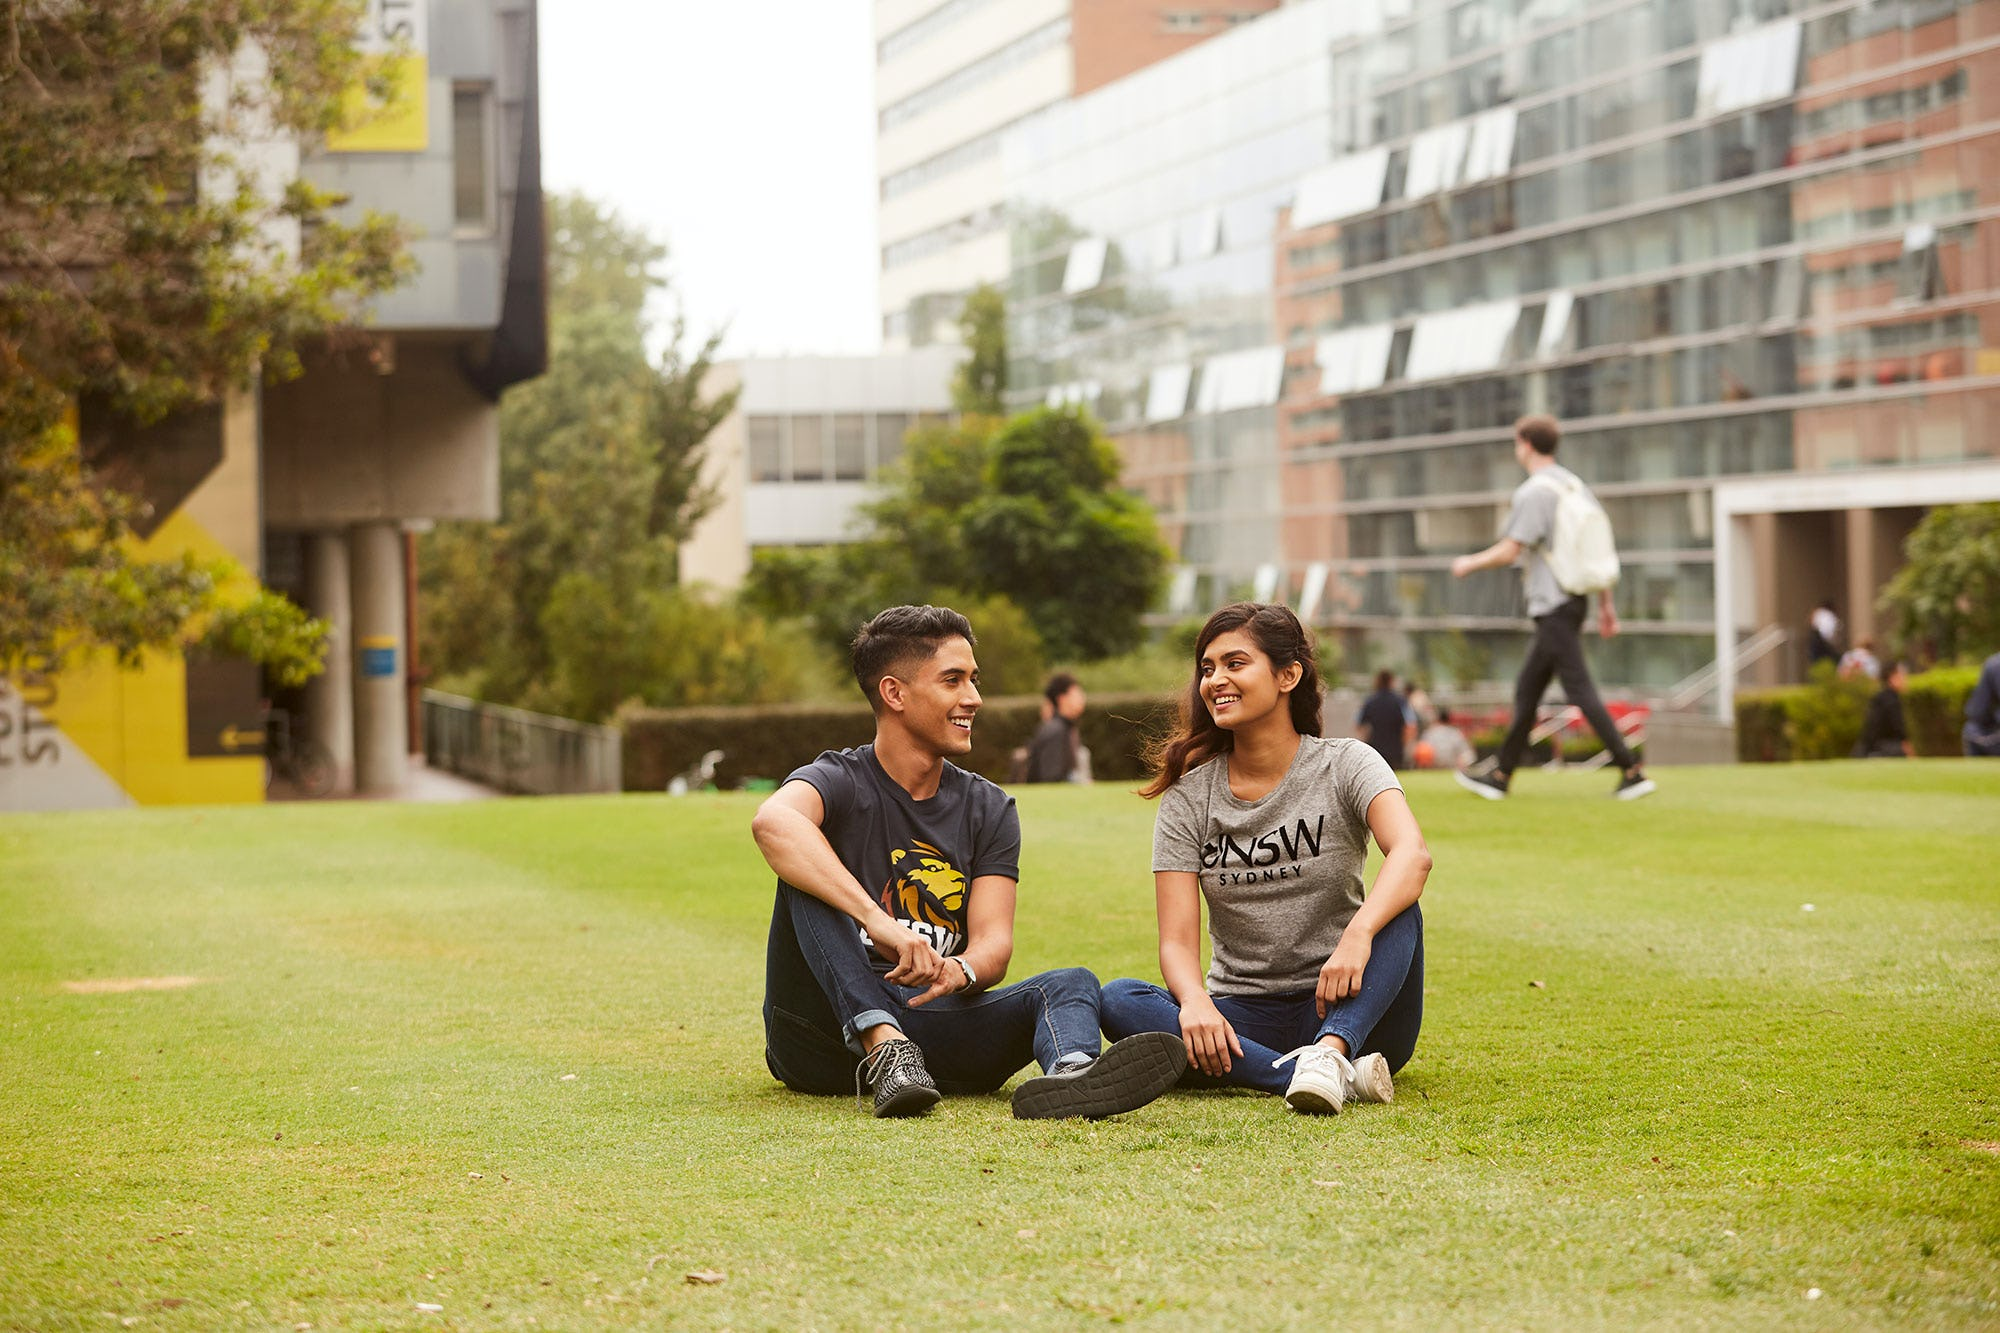 2 people on UNSW campus wearing UNSW clothing